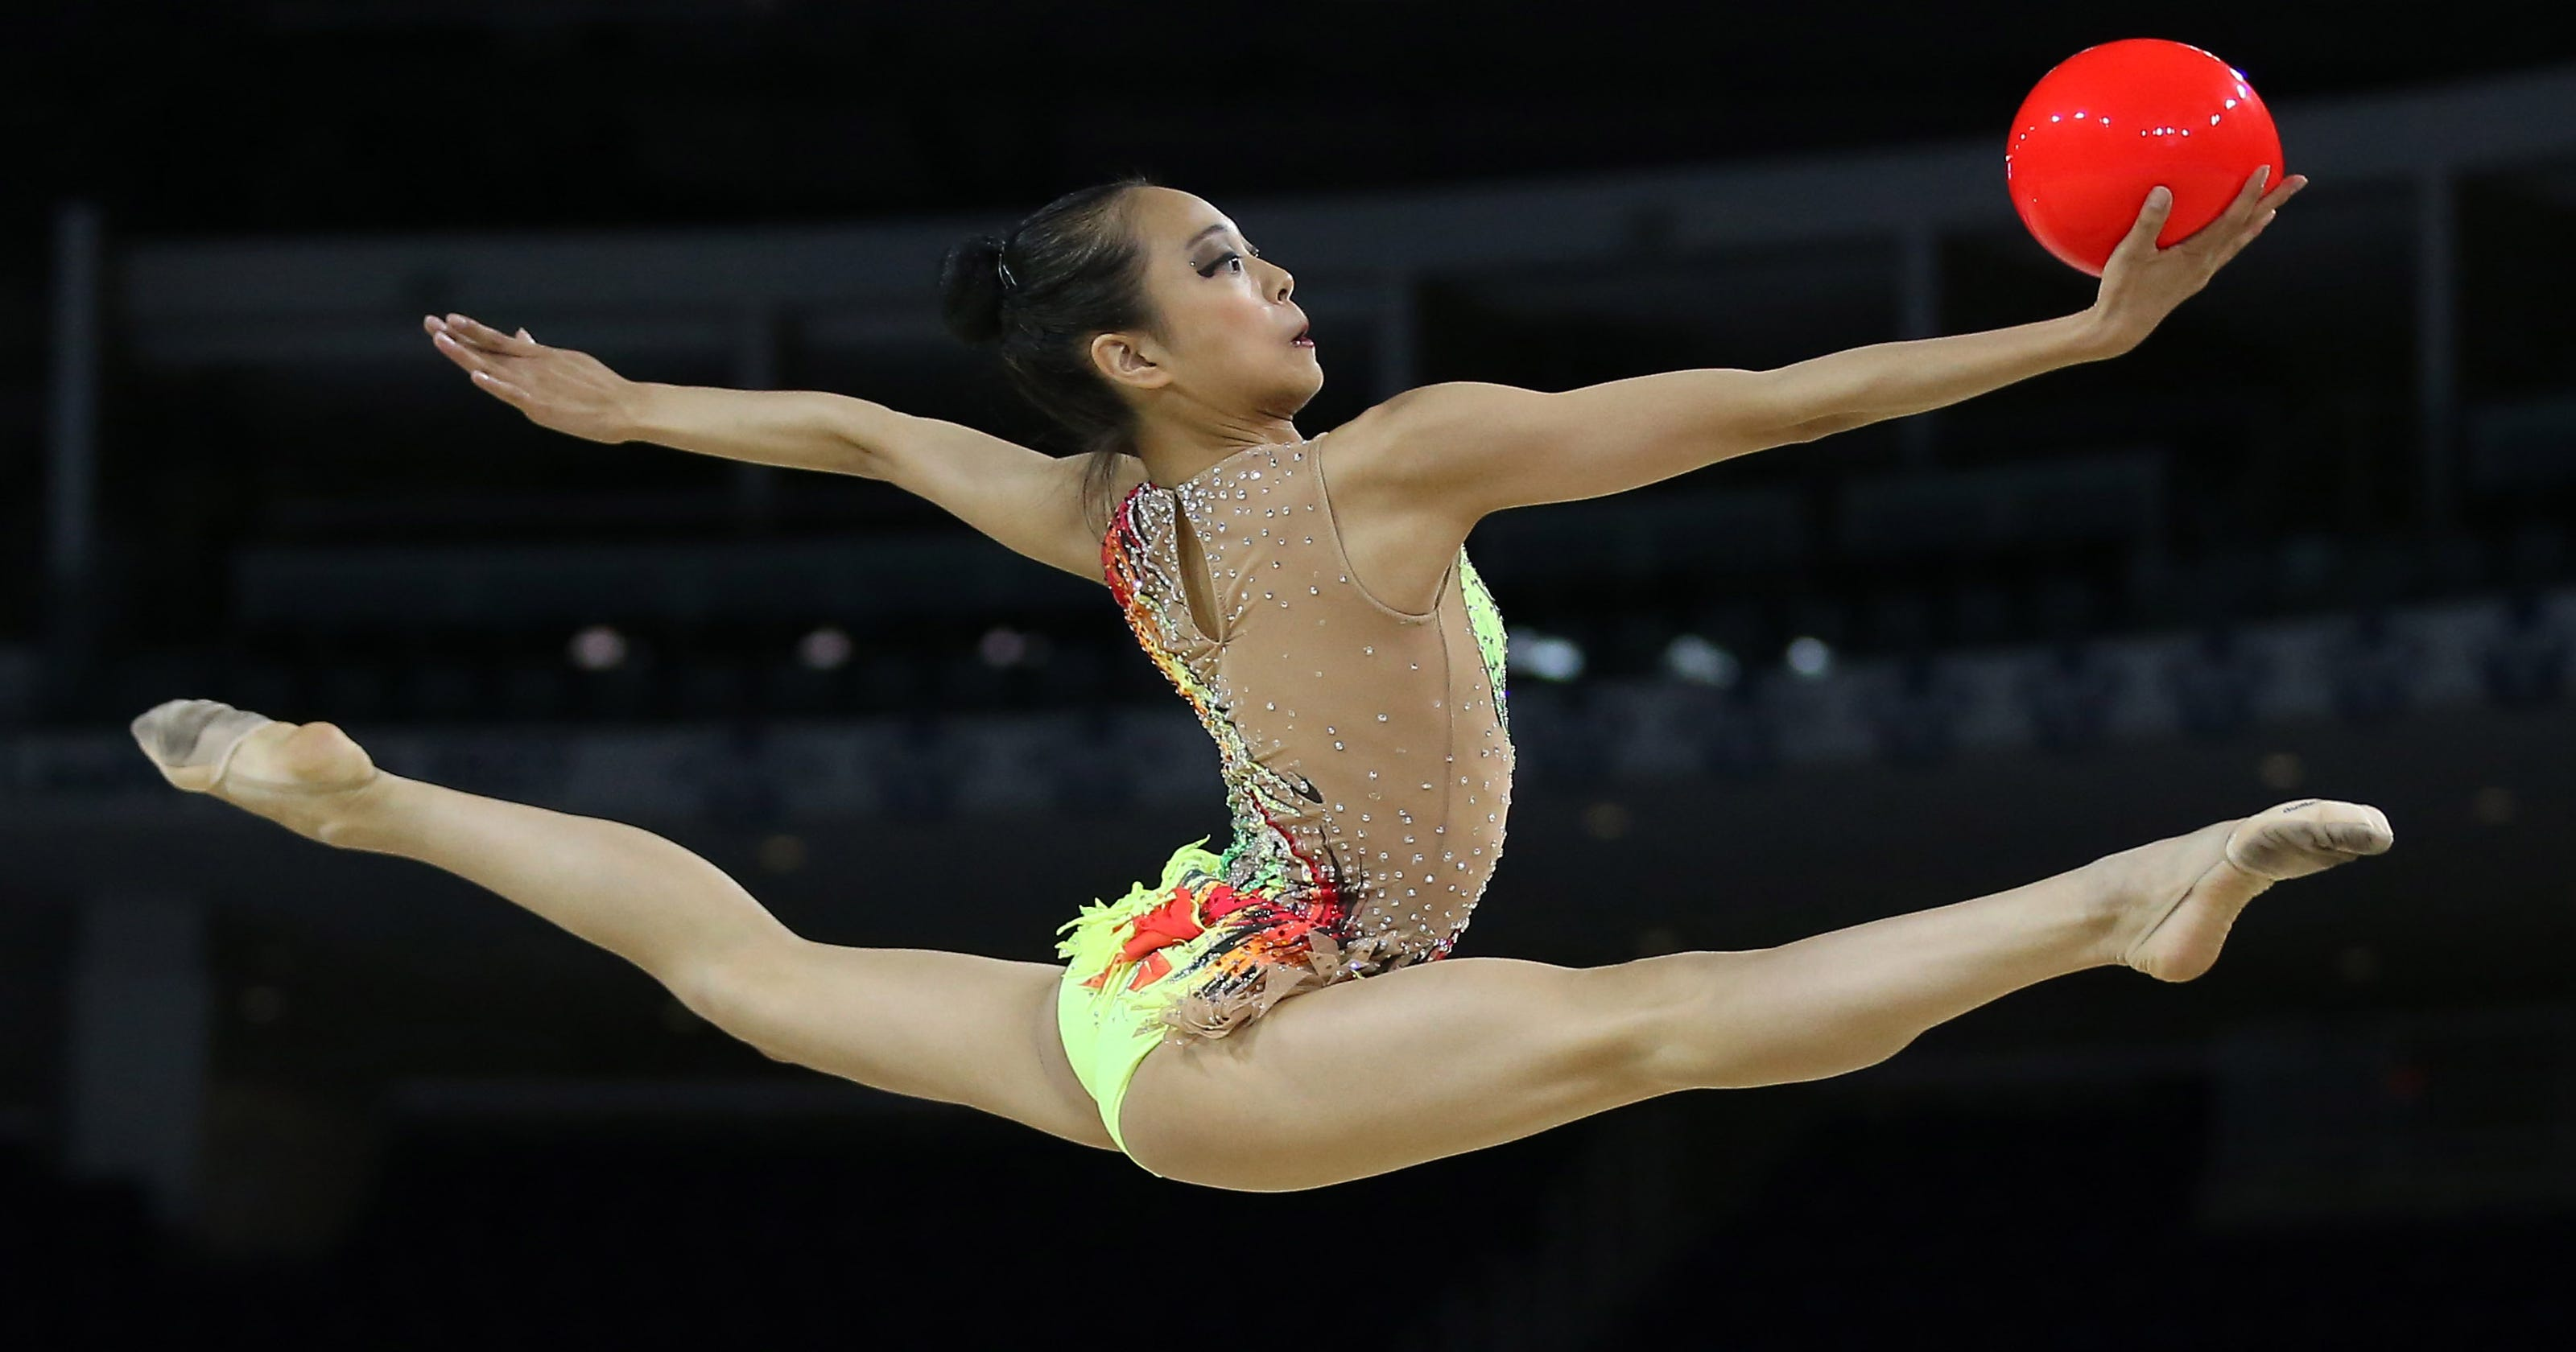 rhythmic gymnast shows sport is more than prancing around